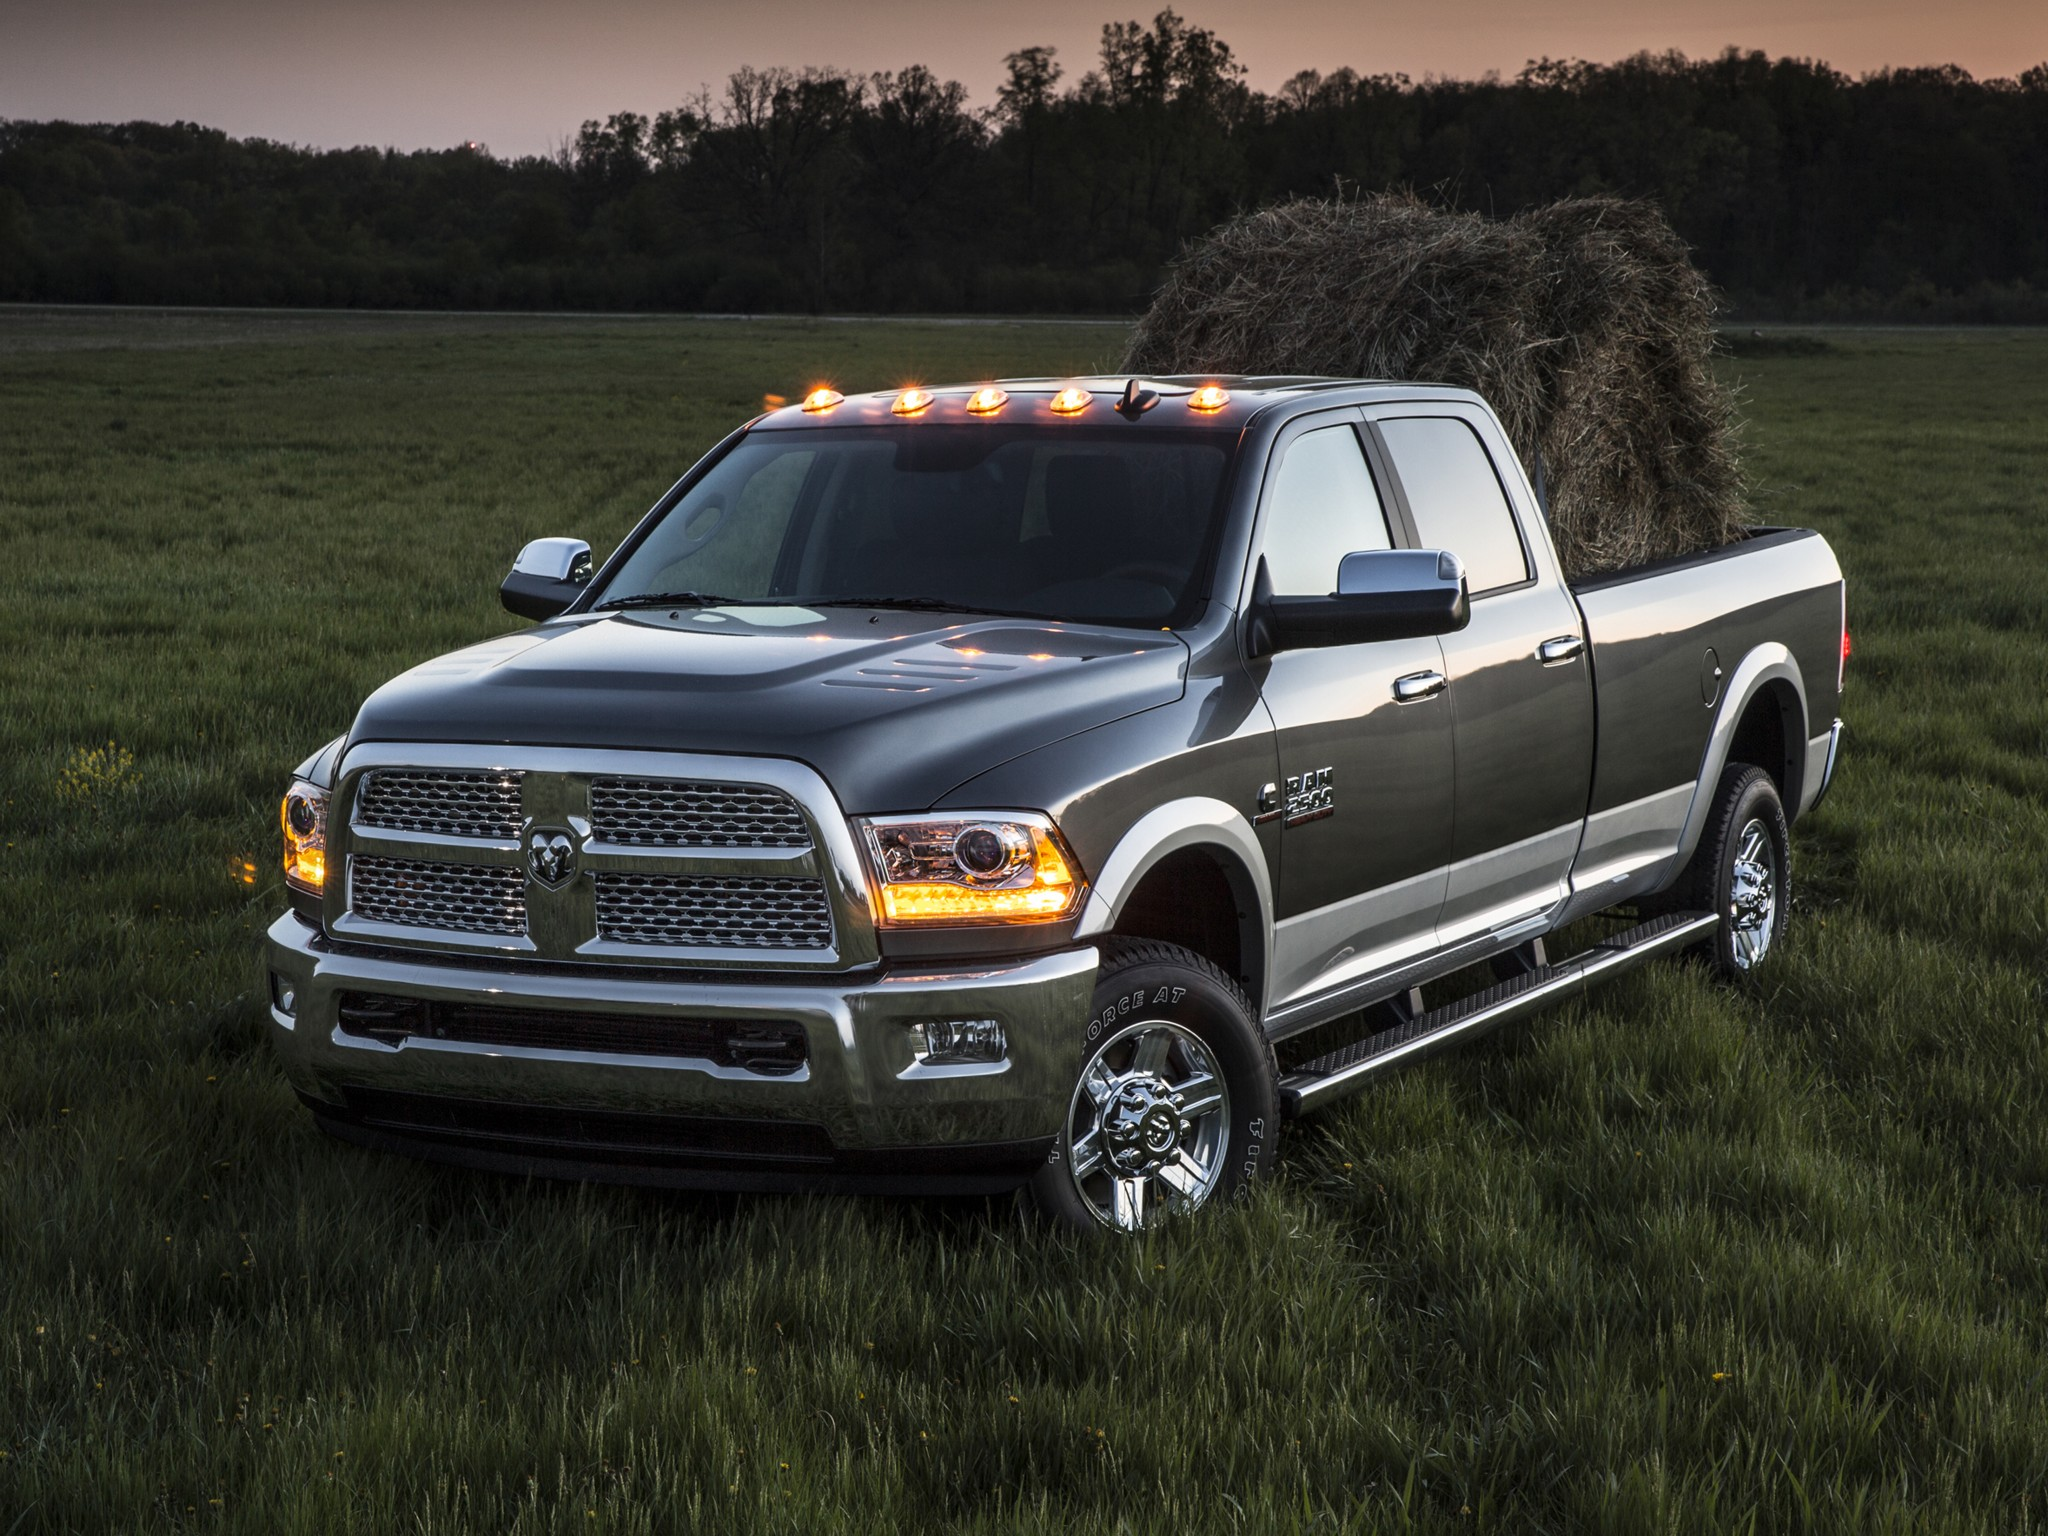 2019 Ram 1500 >> RAM Trucks 2500 Crew Cab specs & photos - 2013, 2014, 2015 ...